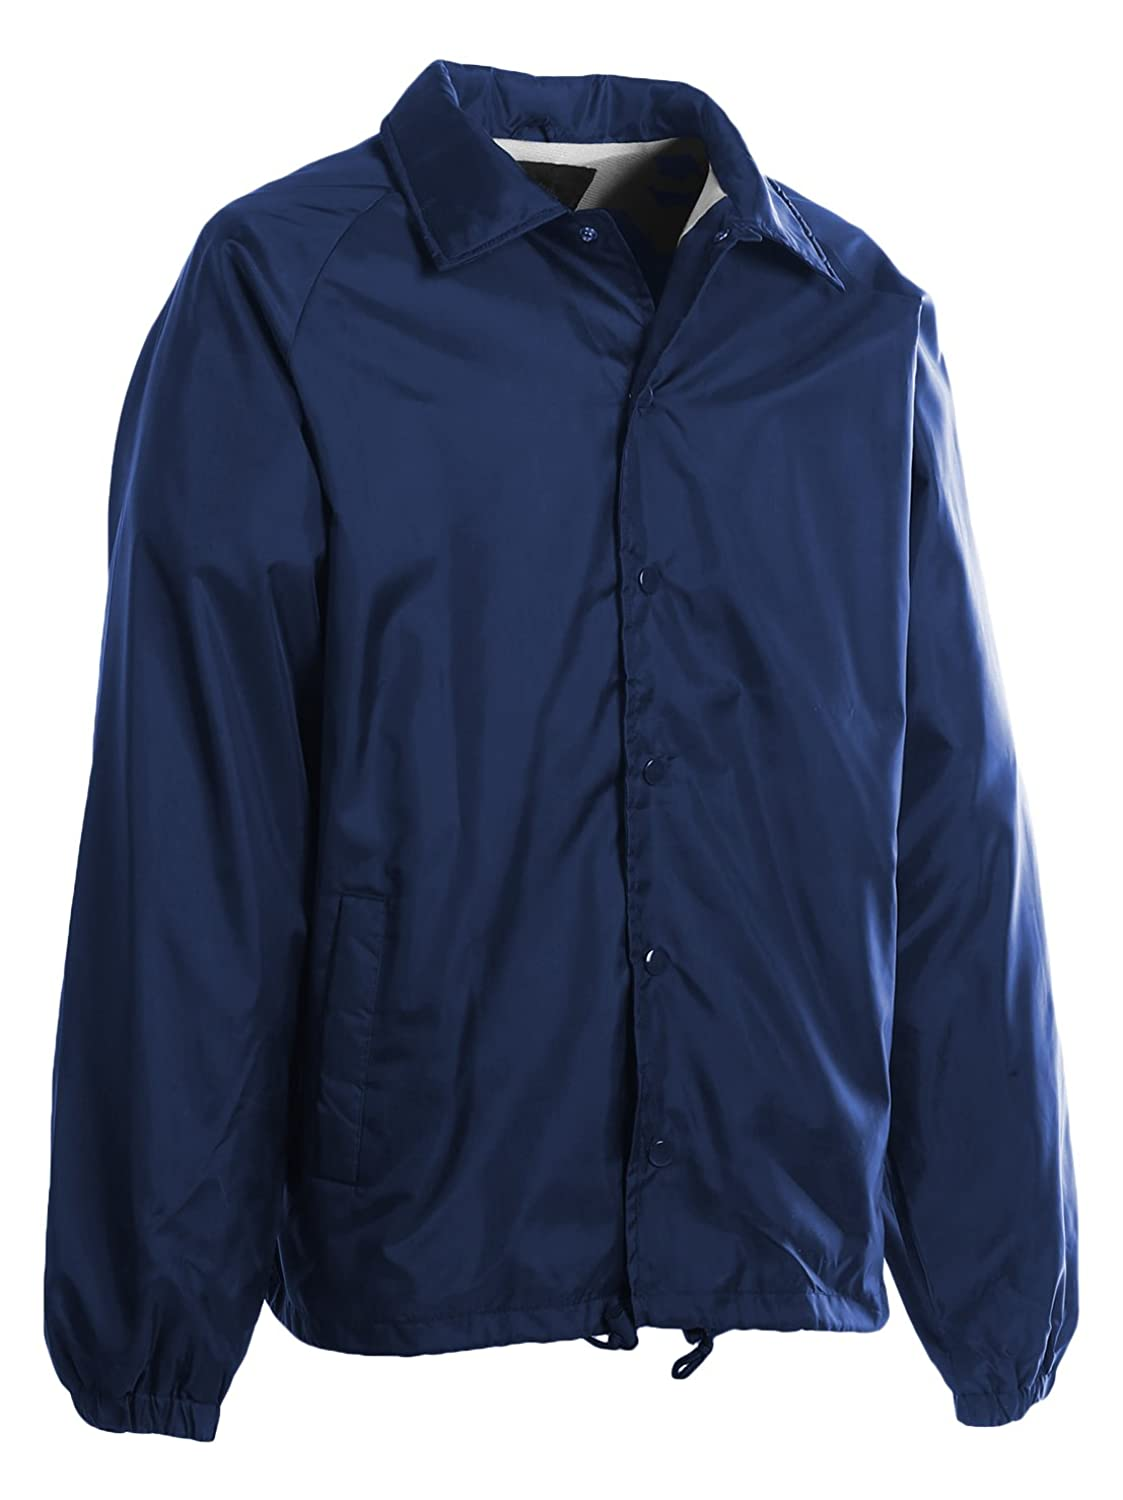 First Class 100% Nylon Windbreaker